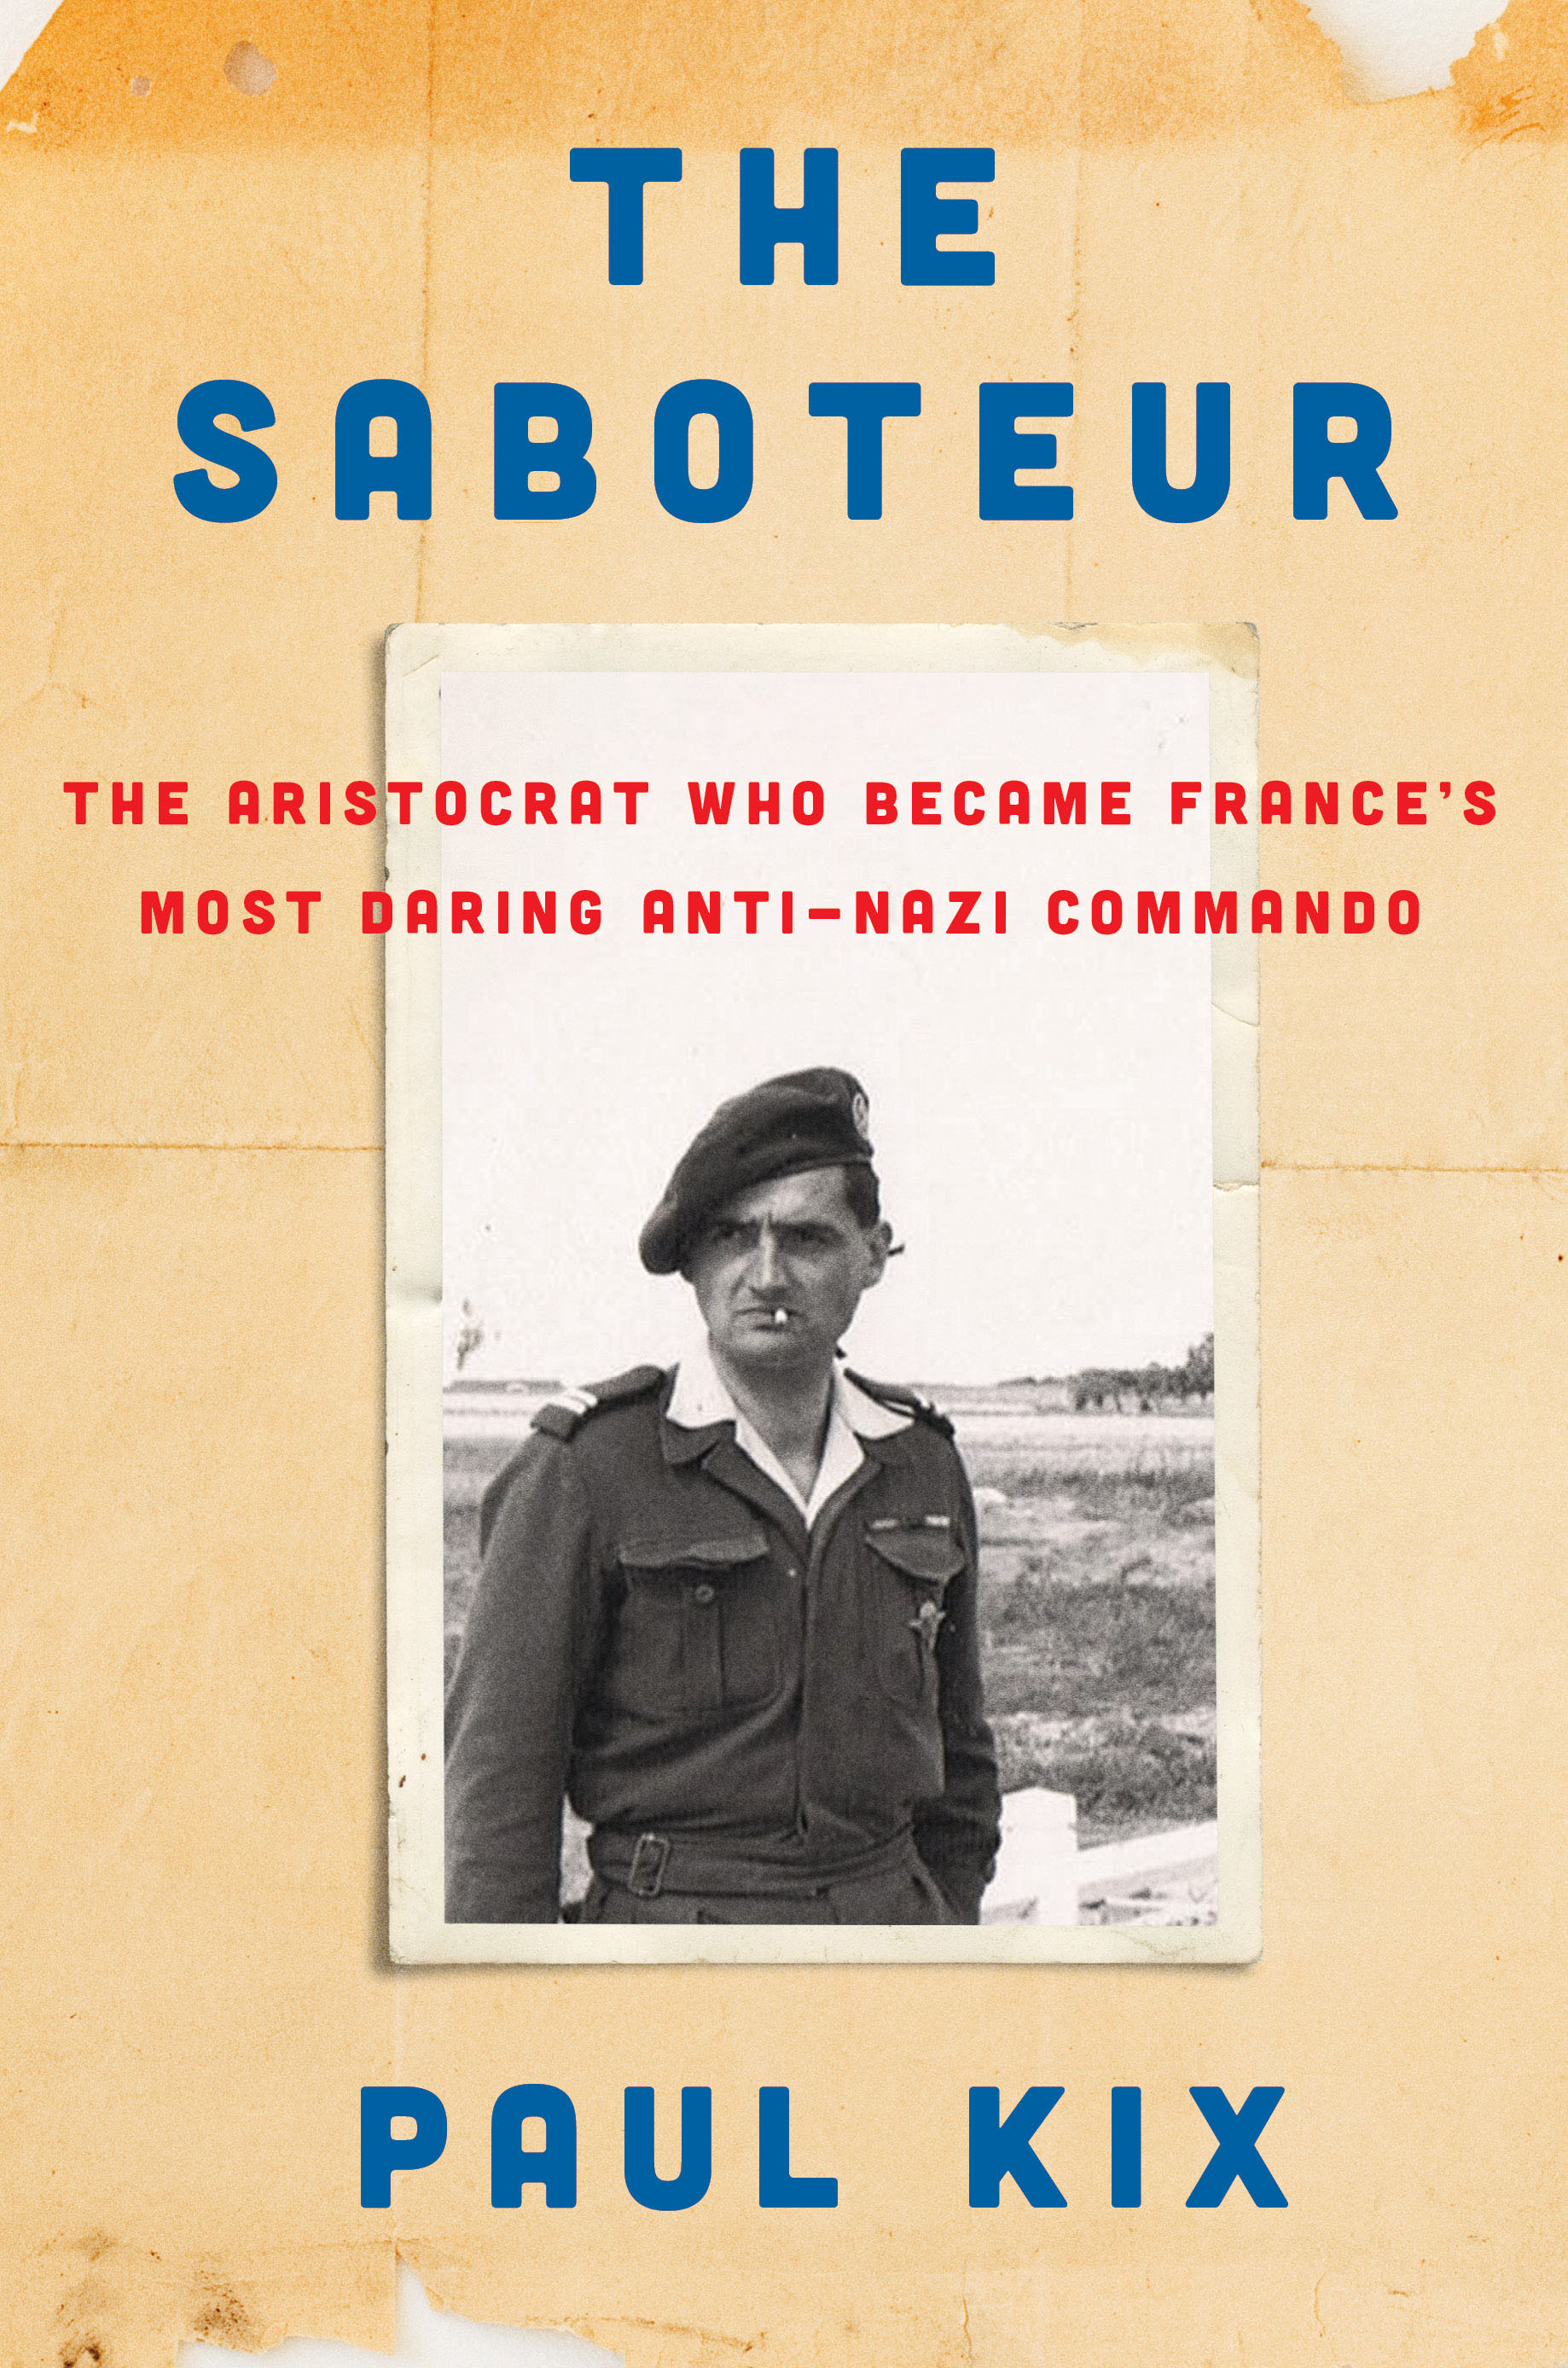 The Saboteur: The Aristocrat Who Became France's Most Daring Anti-Nazi Commando is published by HarperCollins.  Learn more about the book and get updates from the author  at paulkix.com.